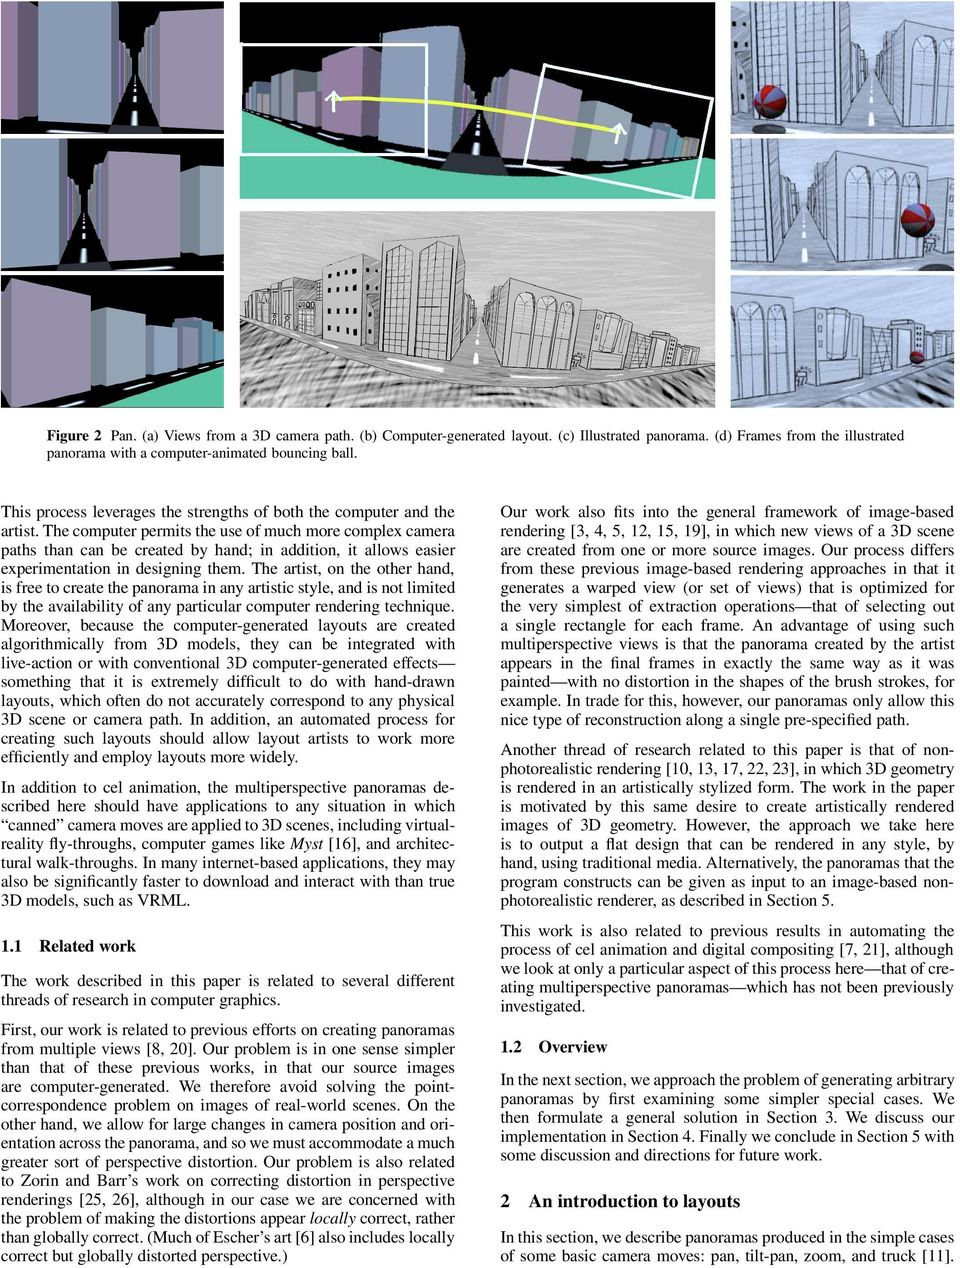 Multiperspective Panoramas For Cel Animation Pdf 360 Degreepass Diagram Success The Computer Permits Use Of Much More Complex Camera Paths Than Can Be Created By